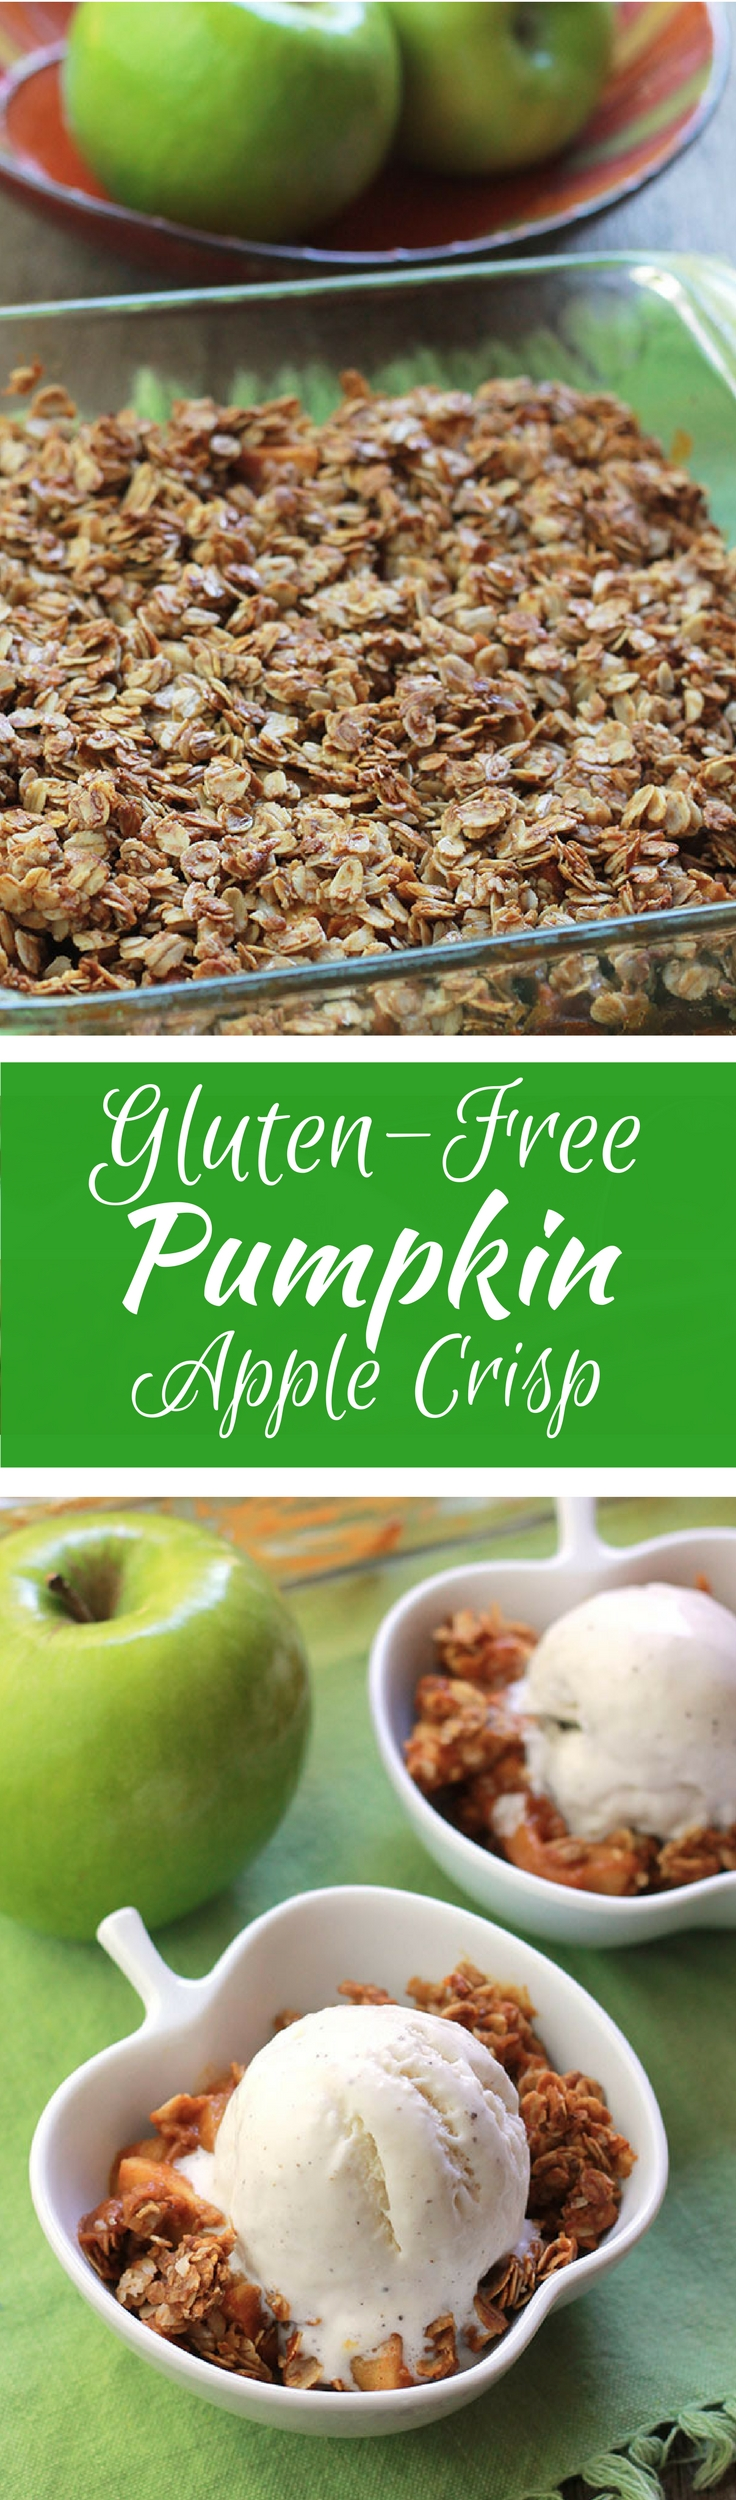 Gluten-Free Pumpkin Apple Crisp - Sliced and diced Granny Smith apples tossed in a pumpkin molasses mixture, topped with a lightly sweetened crumb topping. A new take on an old fall classic.